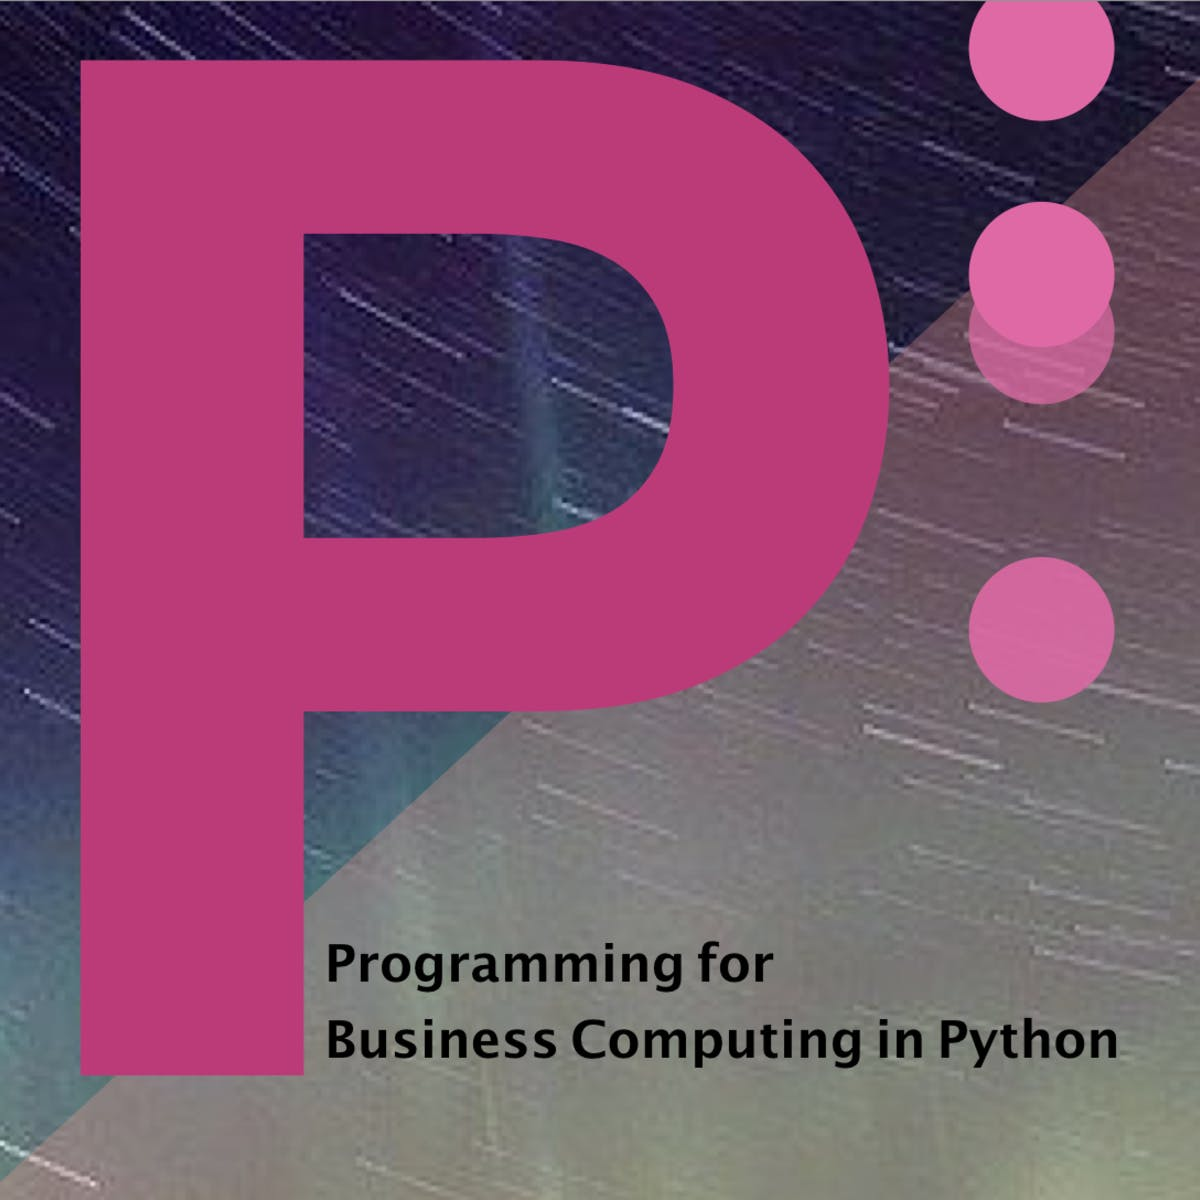 用 Python 做商管程式設計(二)(Programming for Business Computing in Python (2))